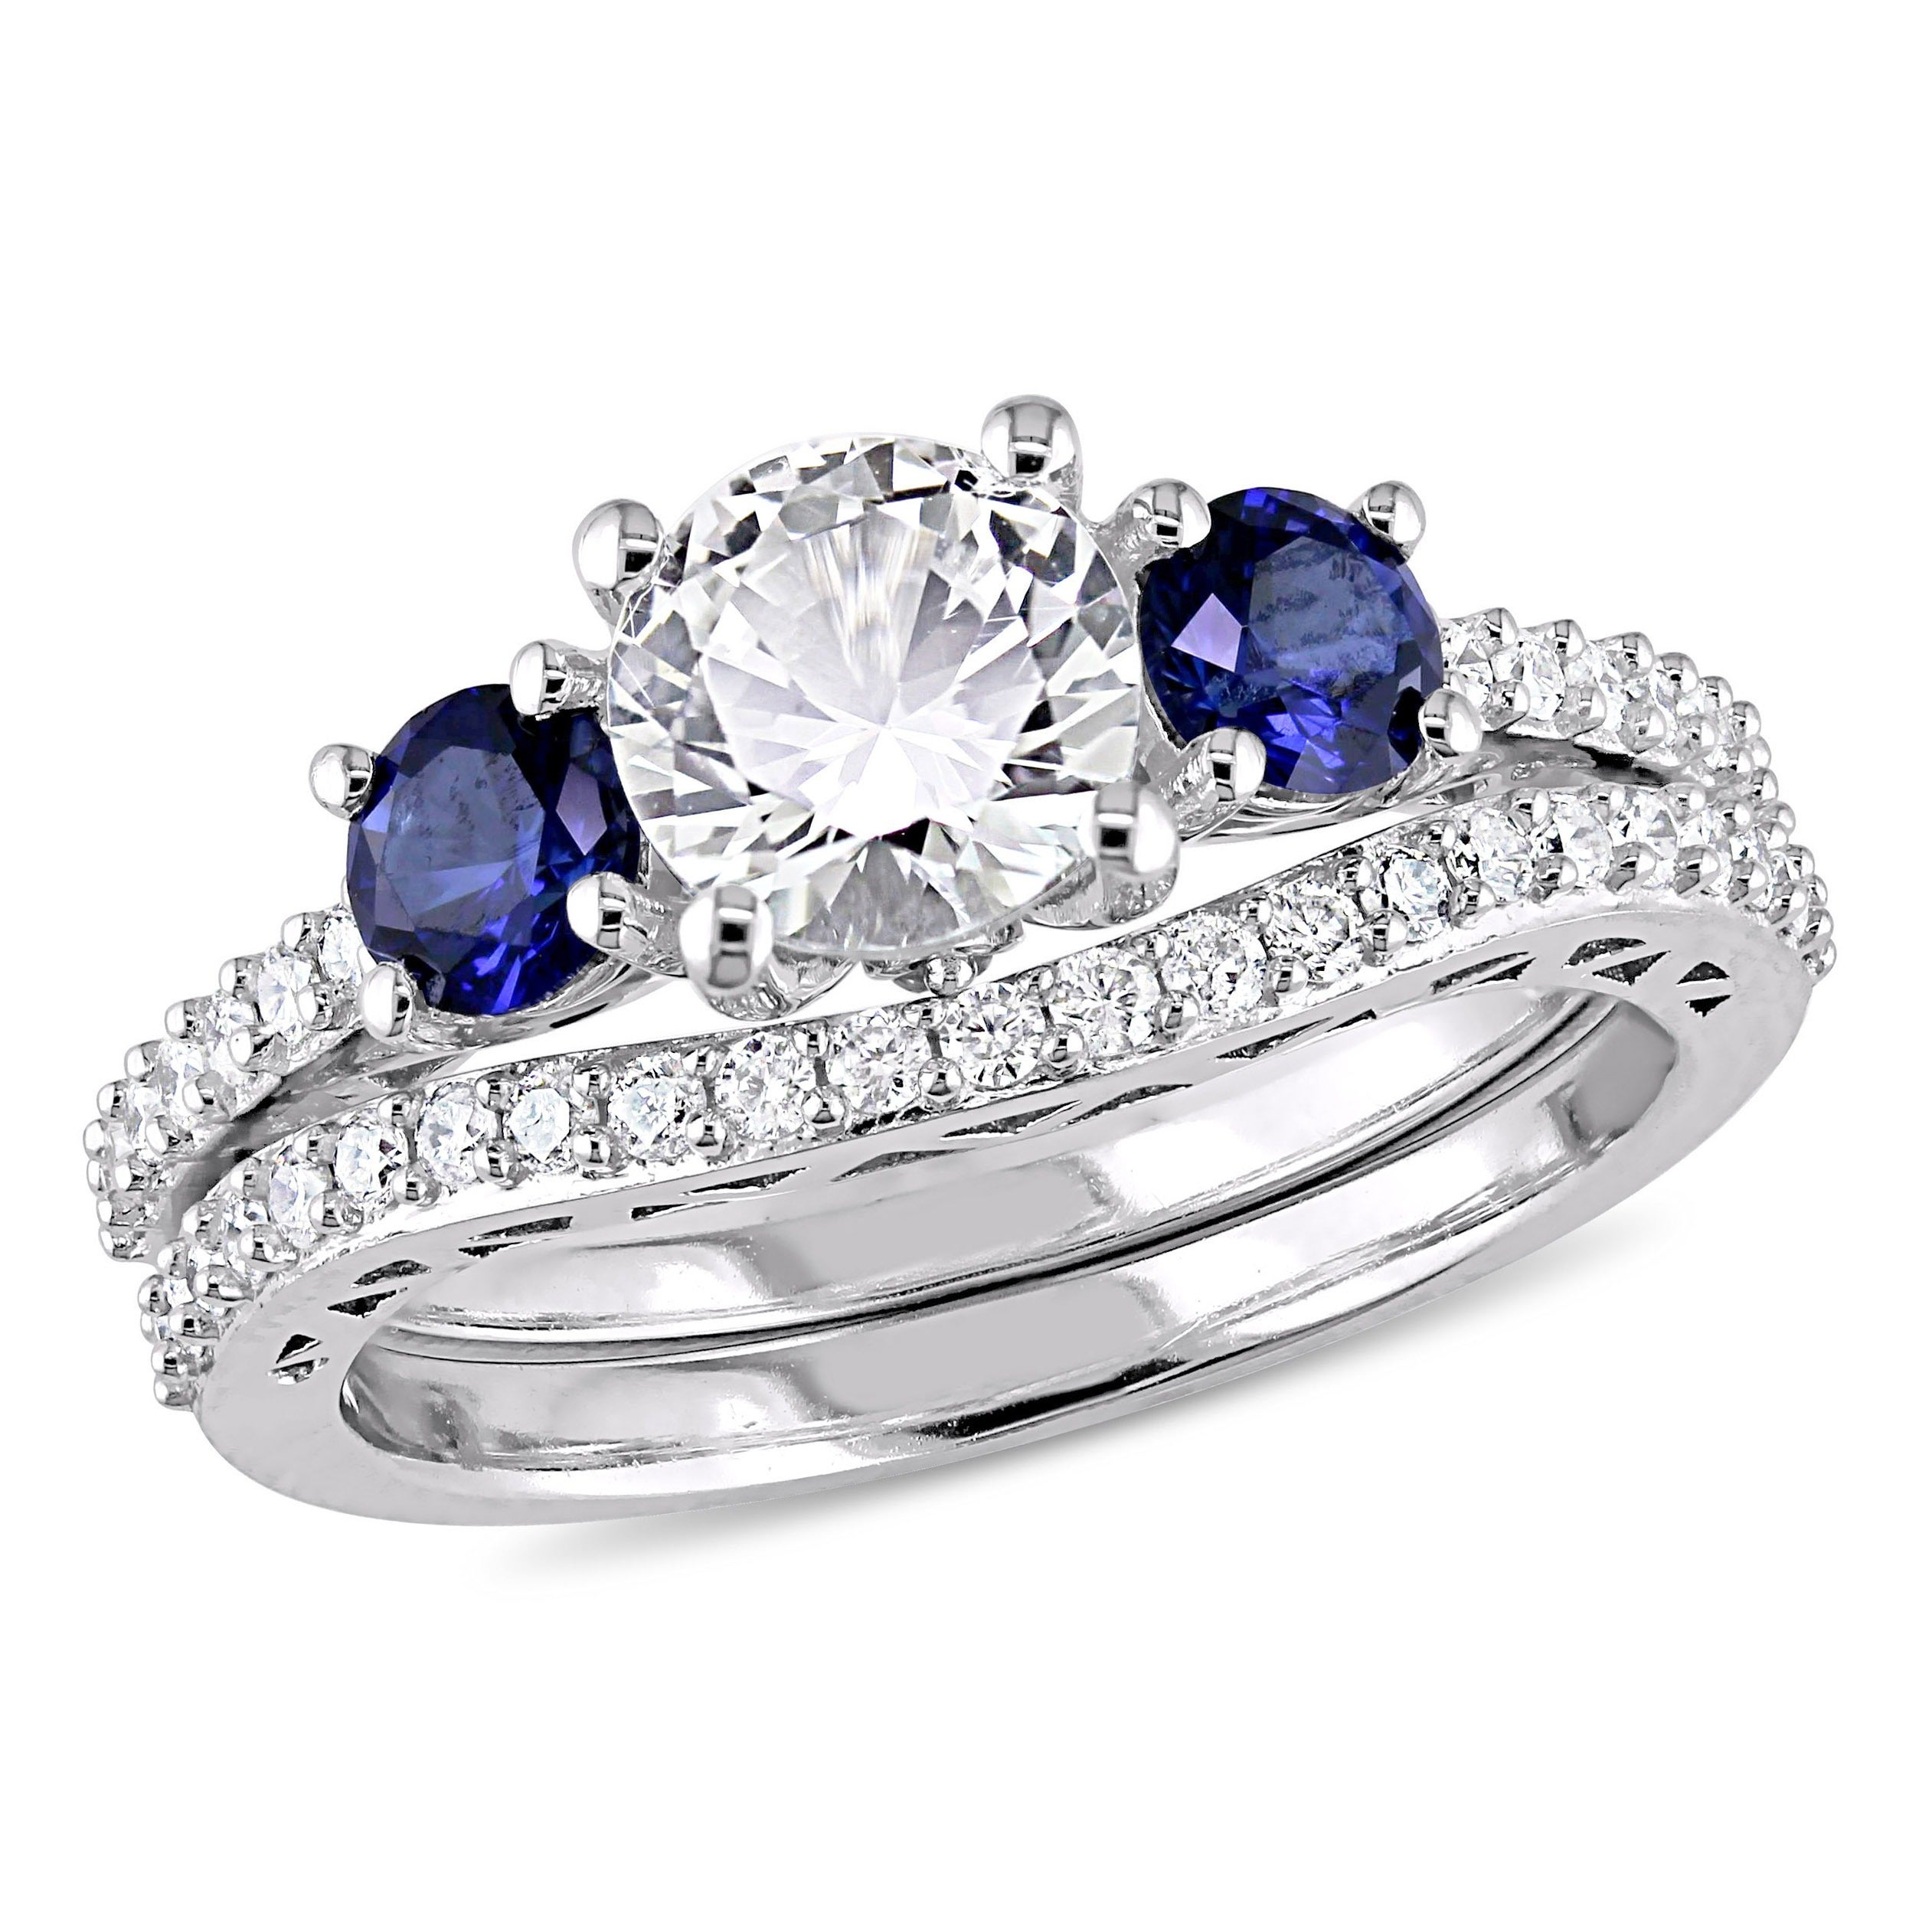 oval full with wedding bands cute cluster oupysju ring diamond sapphire rings uk unique diamonds and size